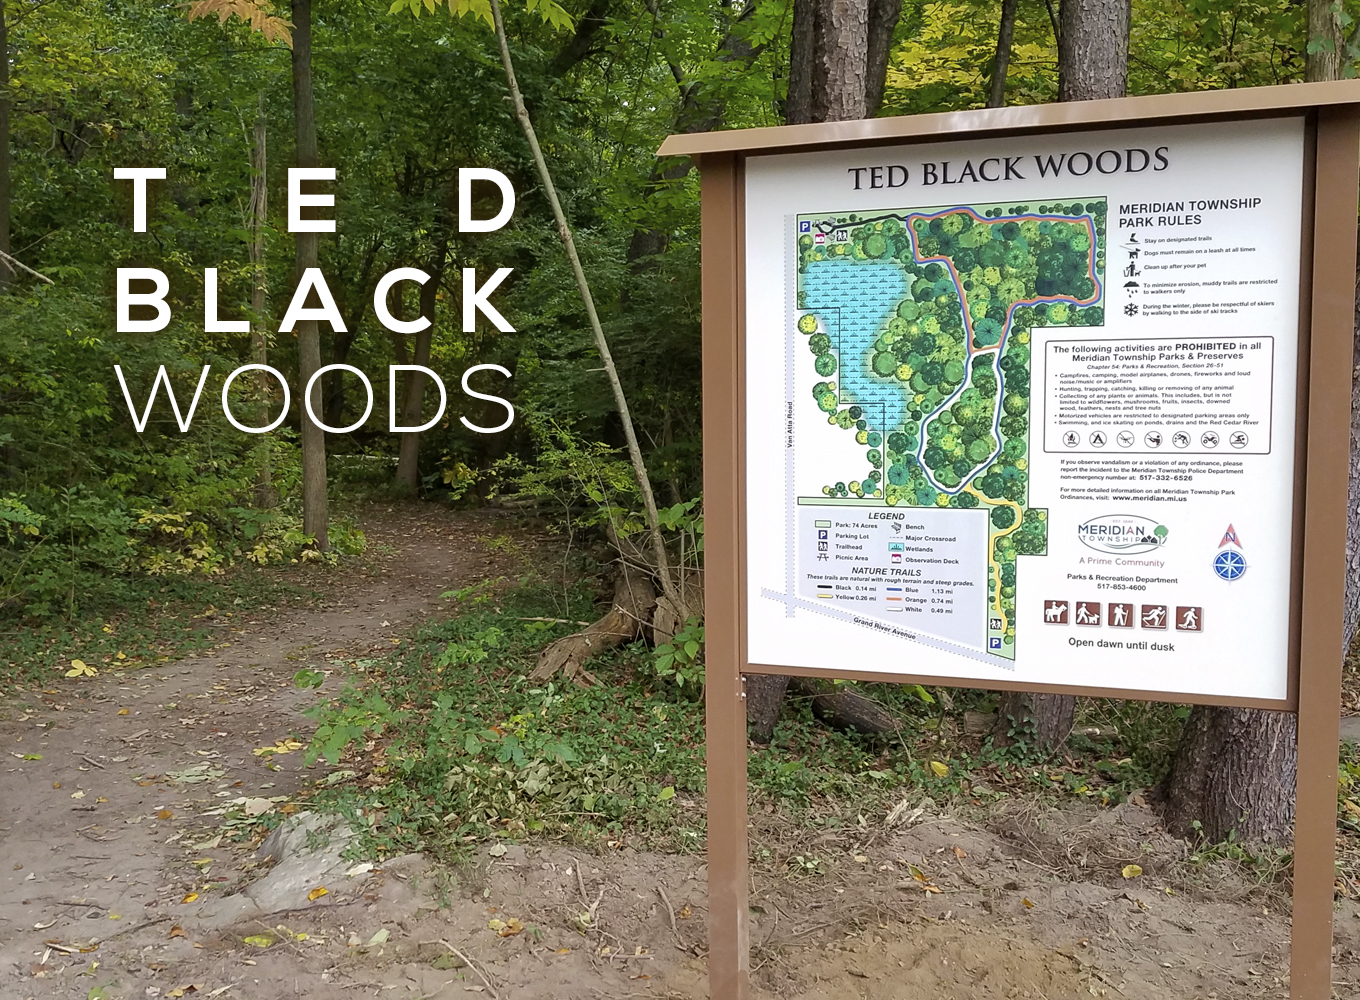 Ted Black Woods